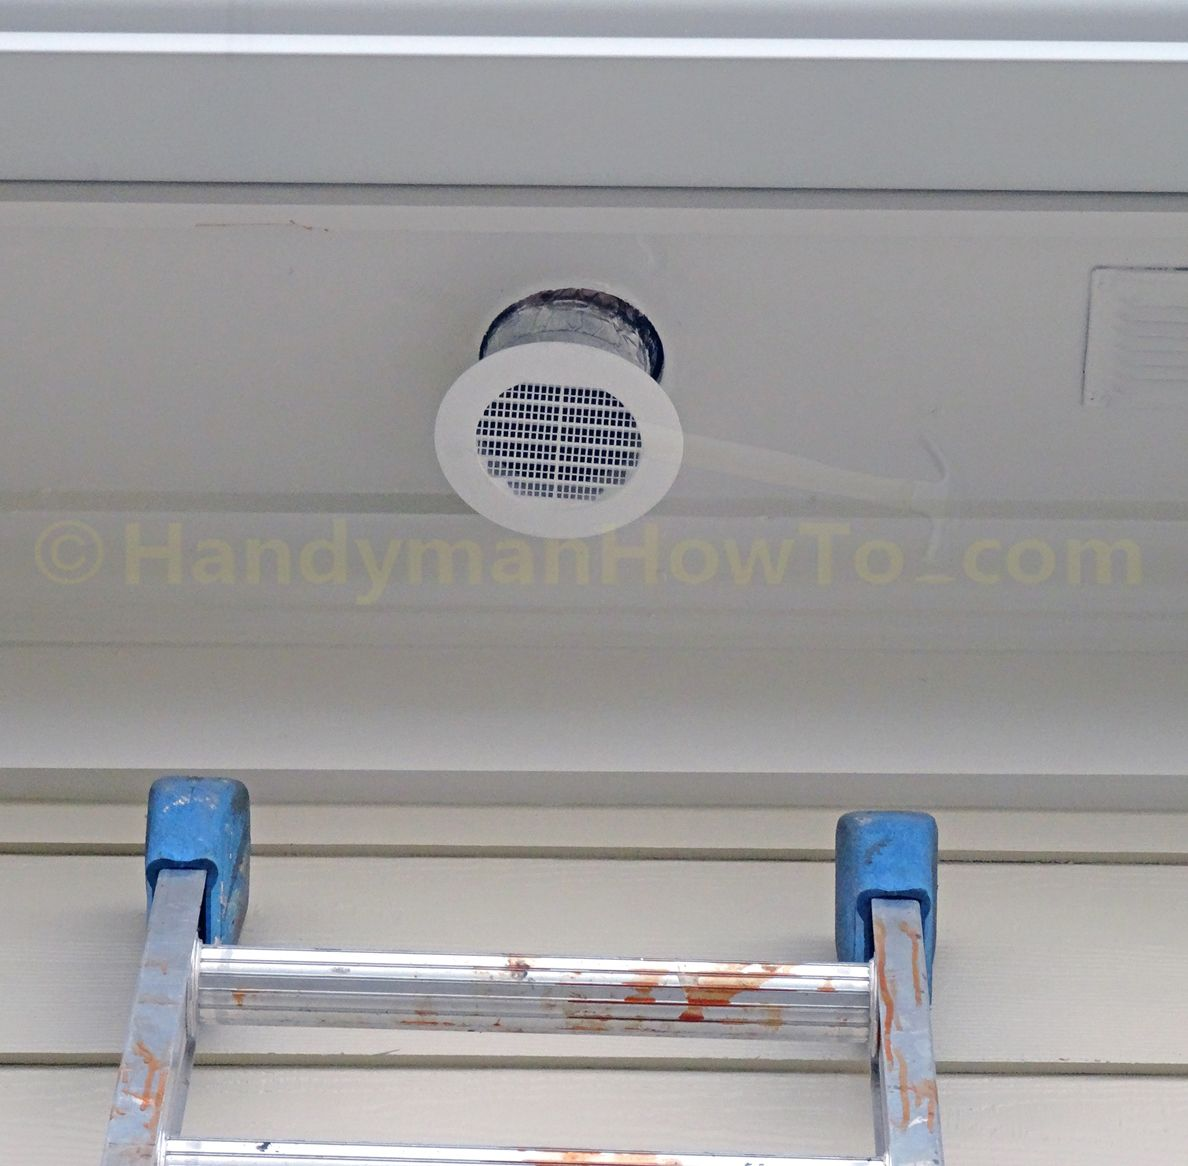 Bathroom Exhaust Fan Into Garage How To Install A Soffit Vent And Ductwork For A Bathroom